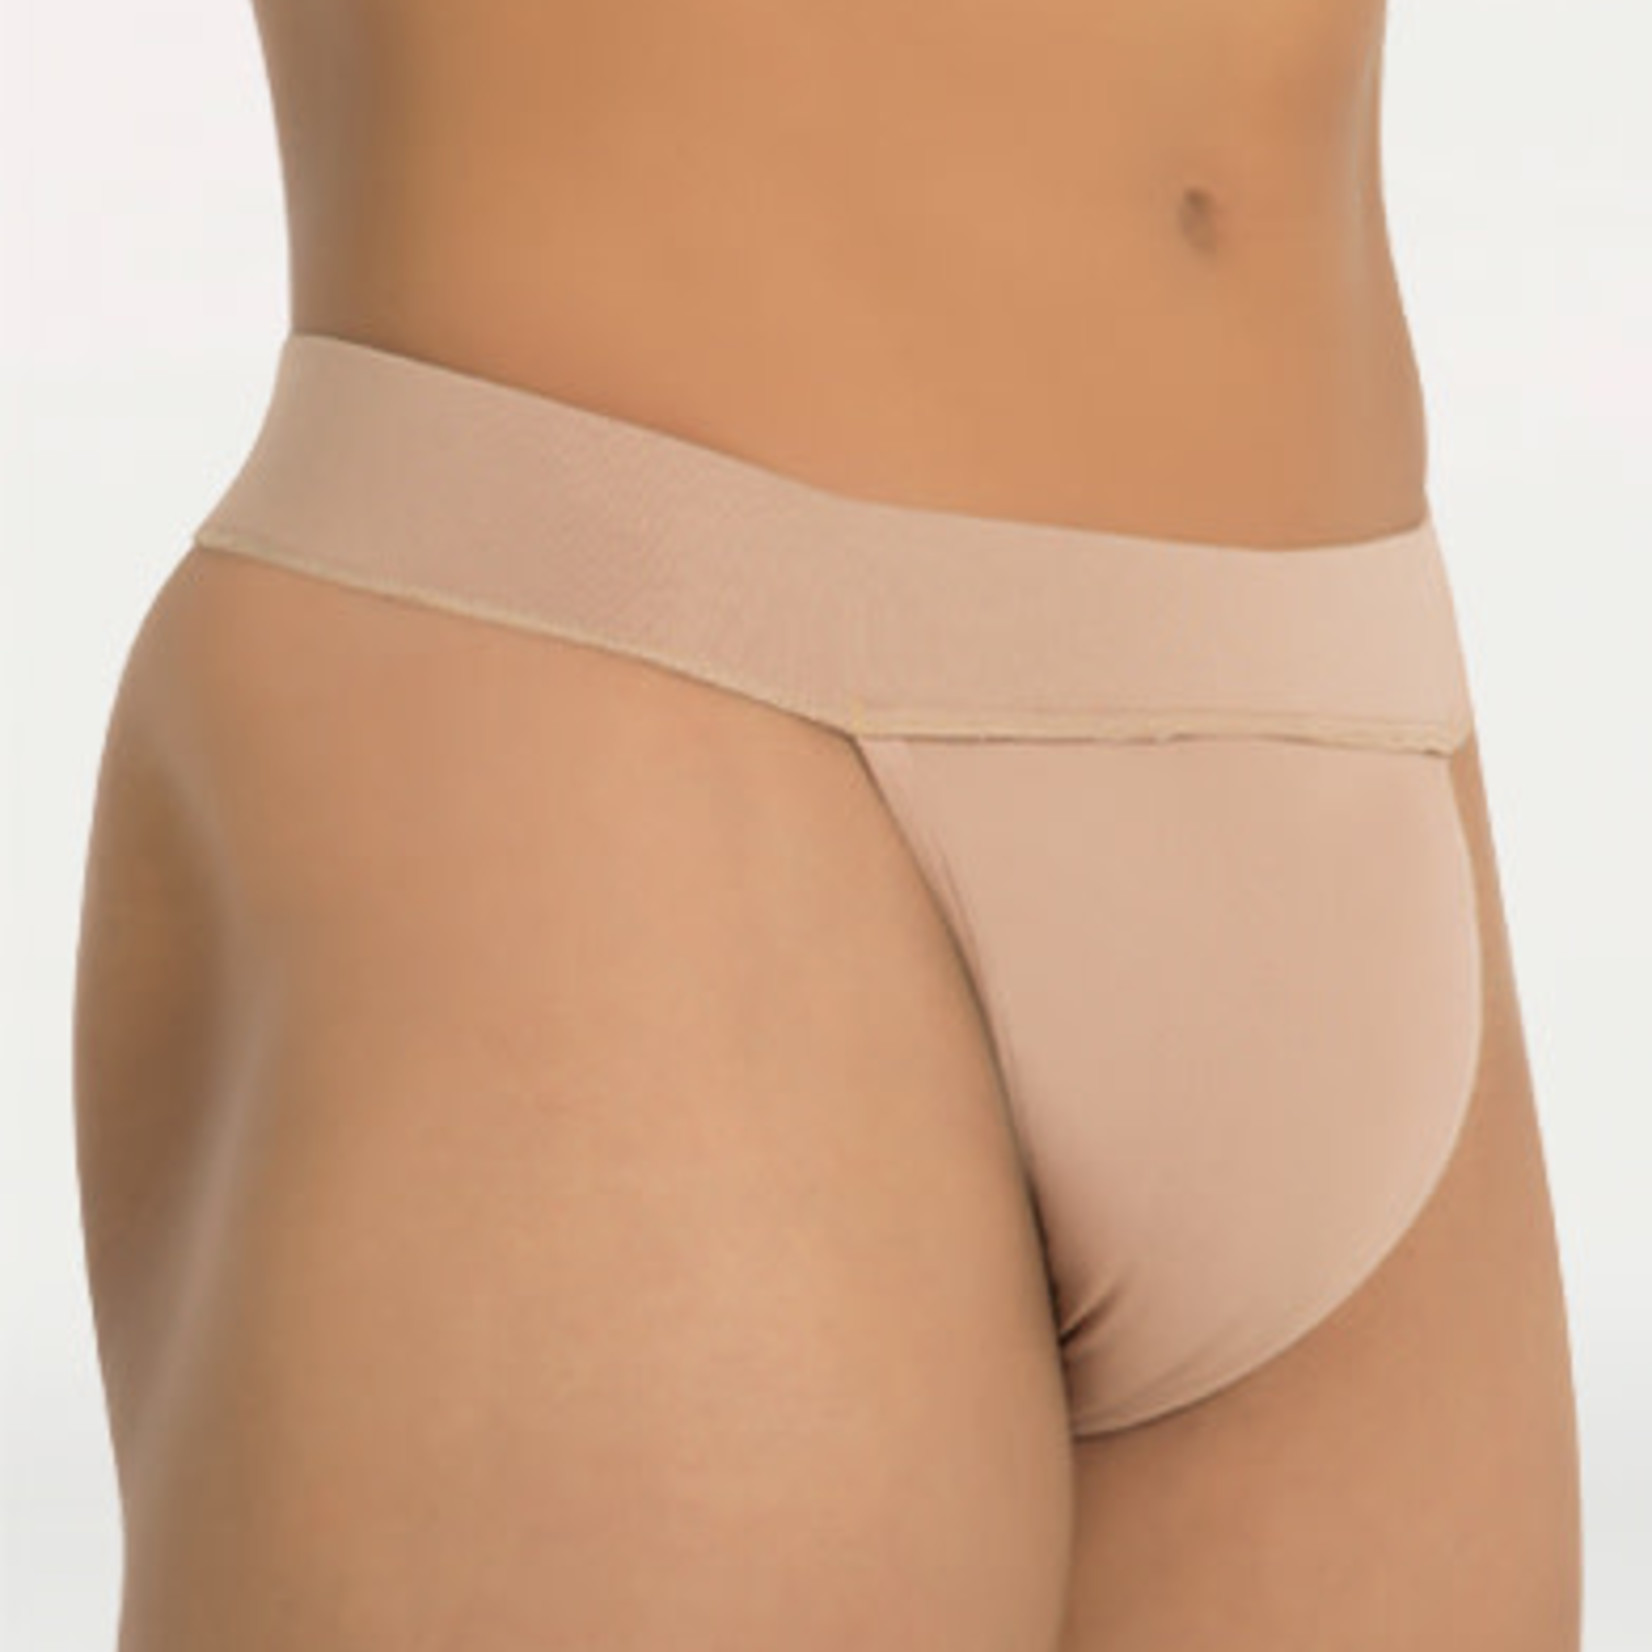 Body Wrappers Body Wrappers M003 Thong Dance Belt